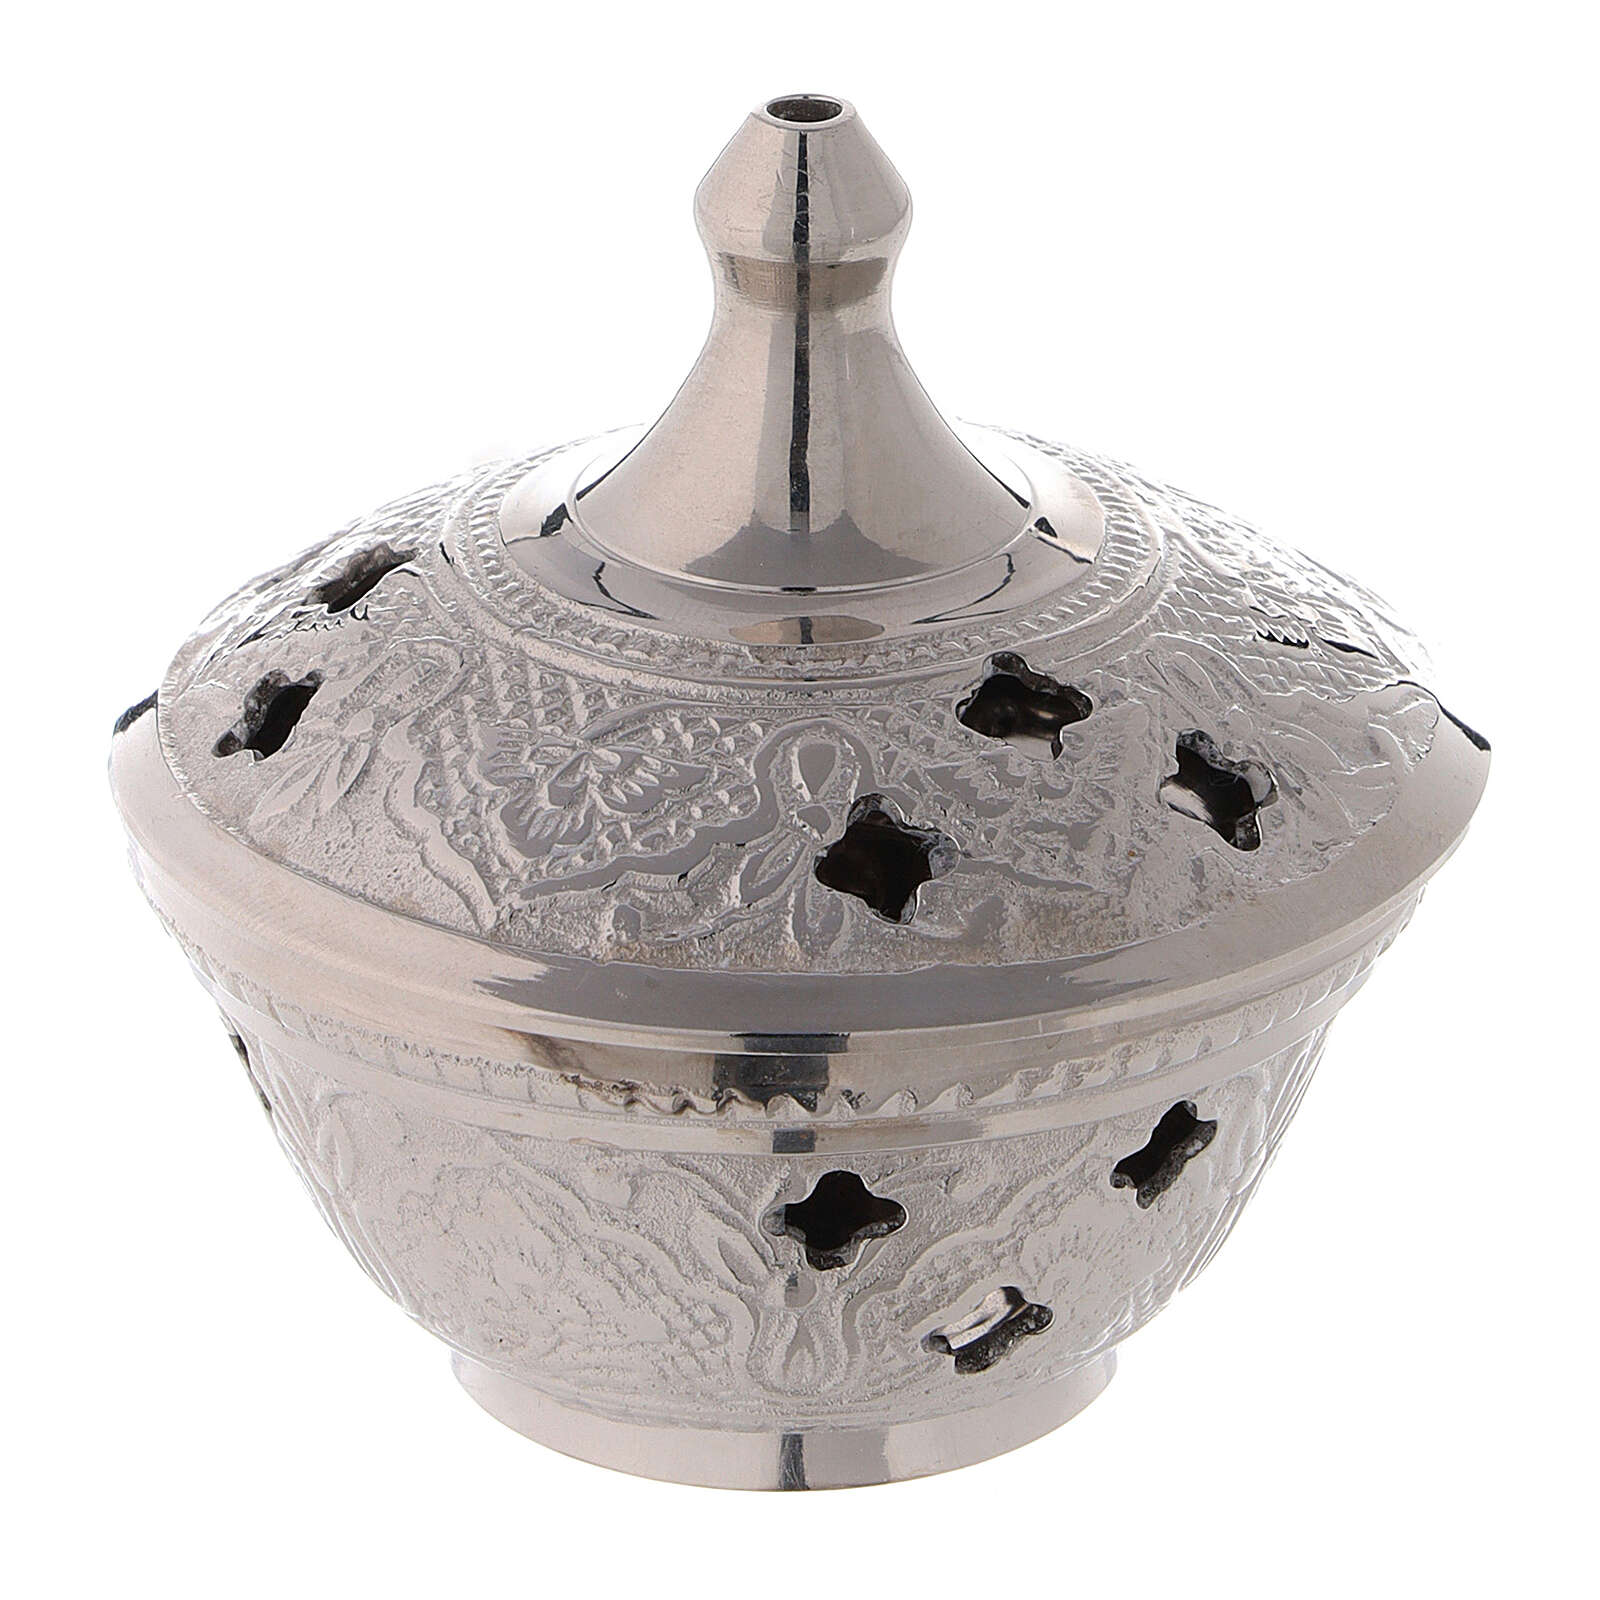 Engraved incense burner in silver-plated brass diameter 2 3/4 in 3